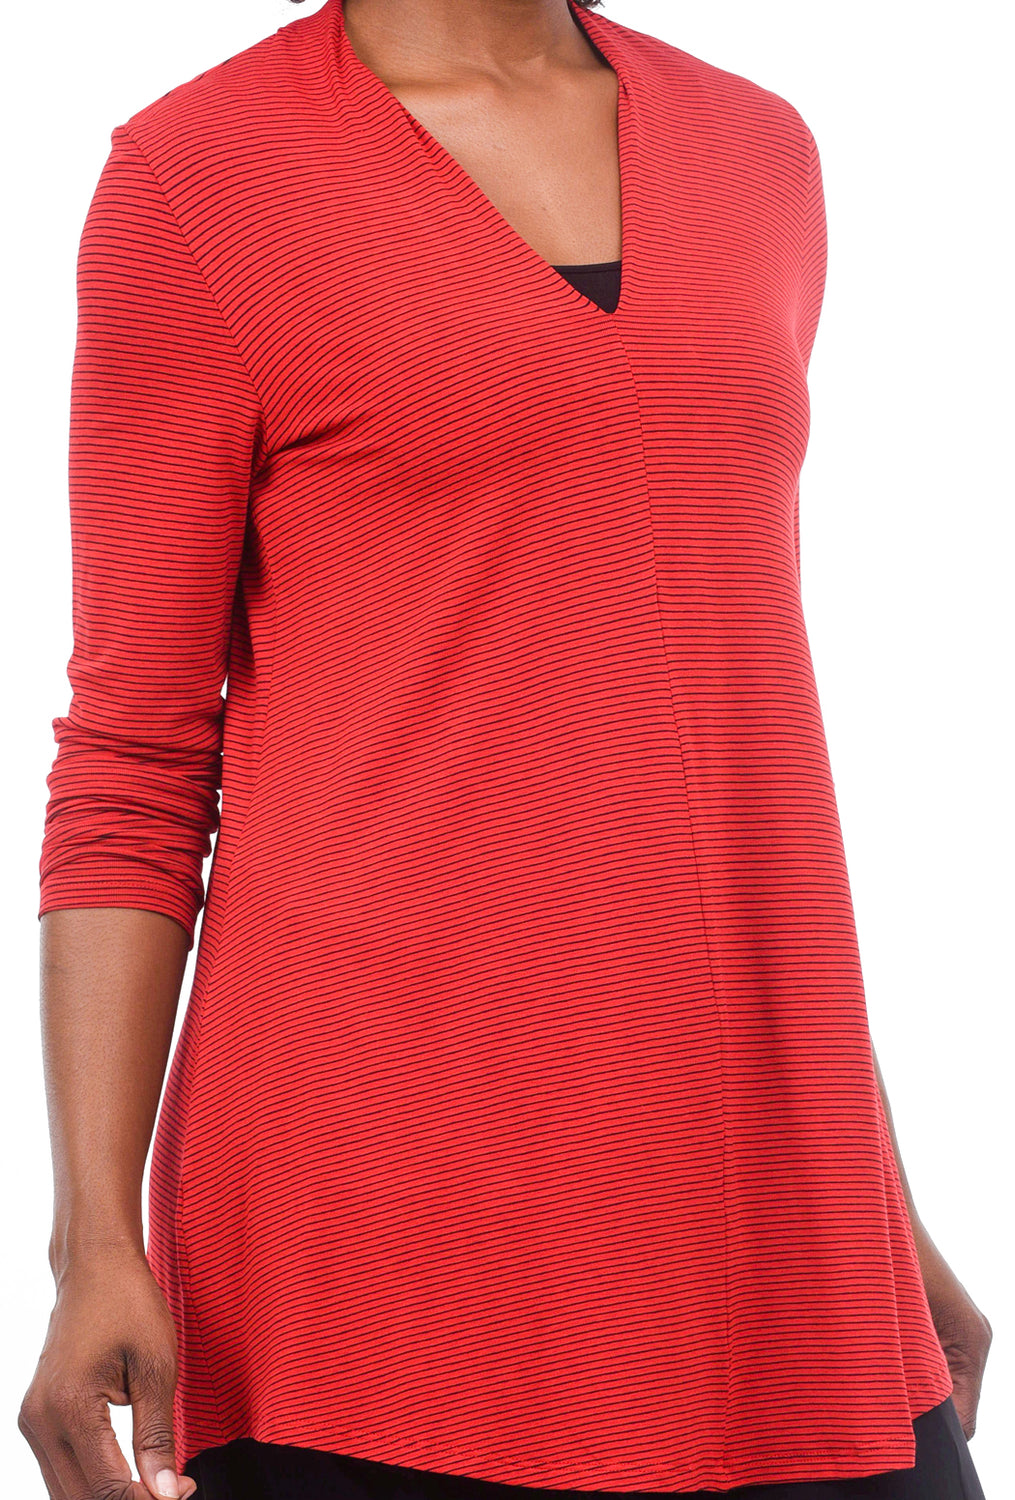 Alembika Bika Shapely Knit V Top, Red